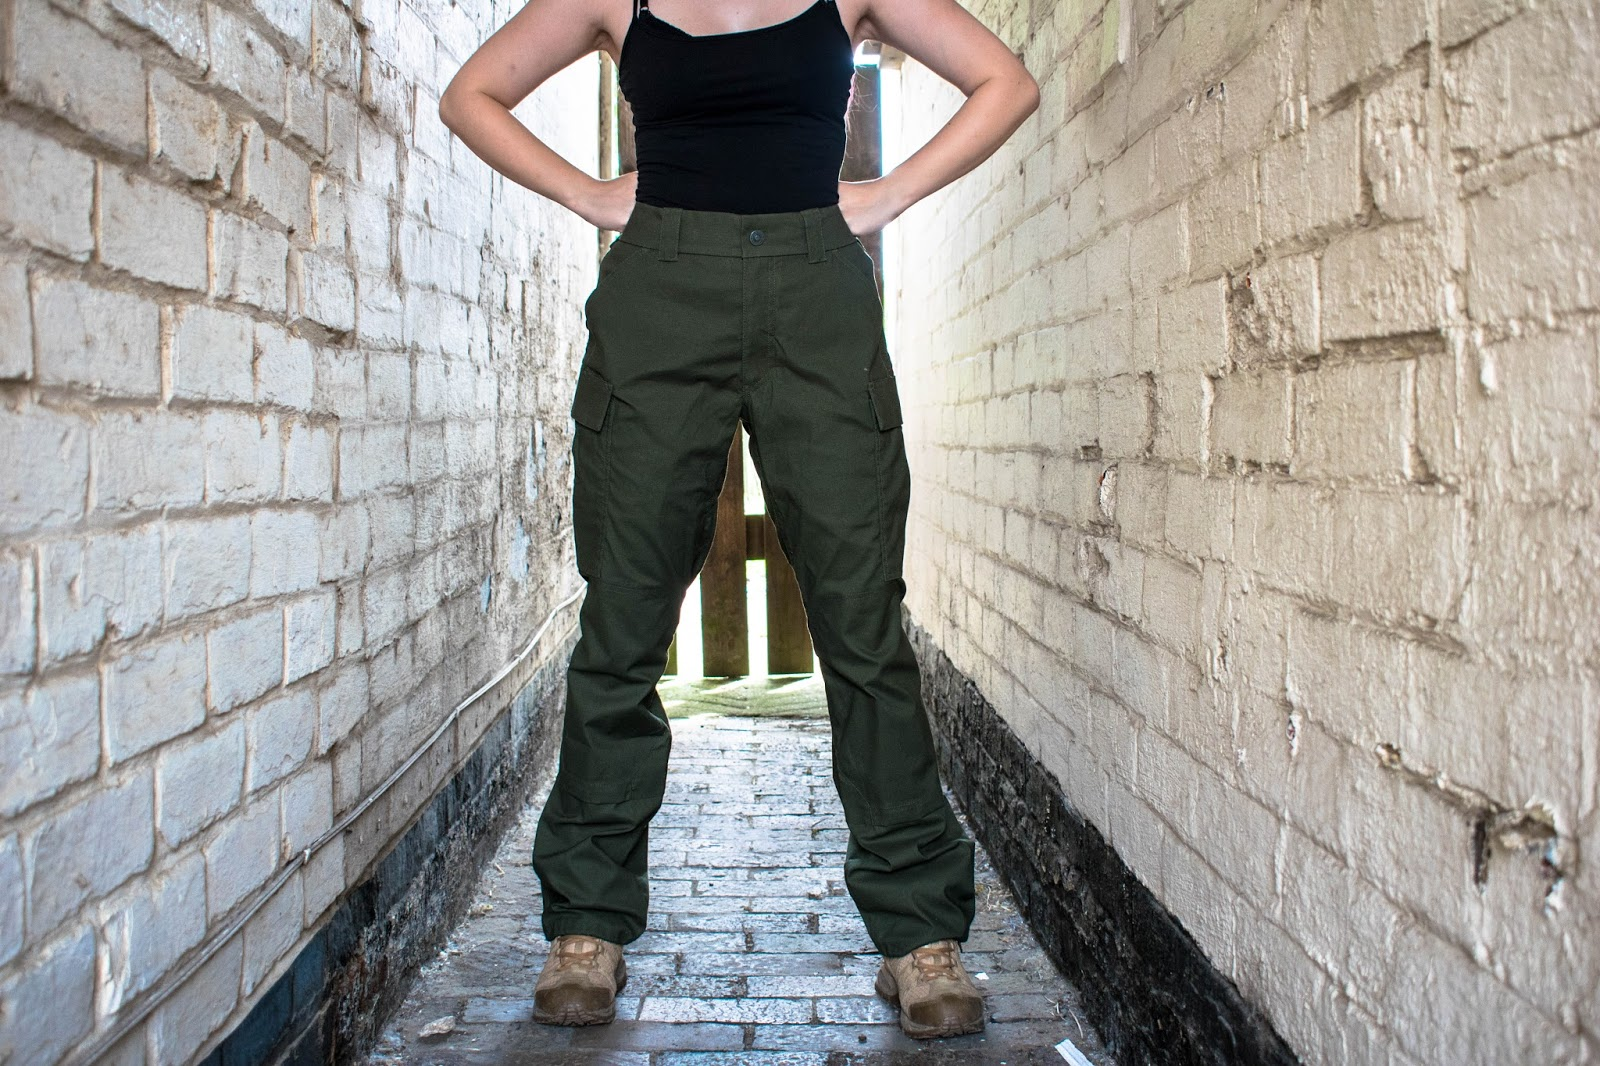 c5013d3d4346 In this review we'll be looking at the First Tactical Men's Tactix BDU pants !